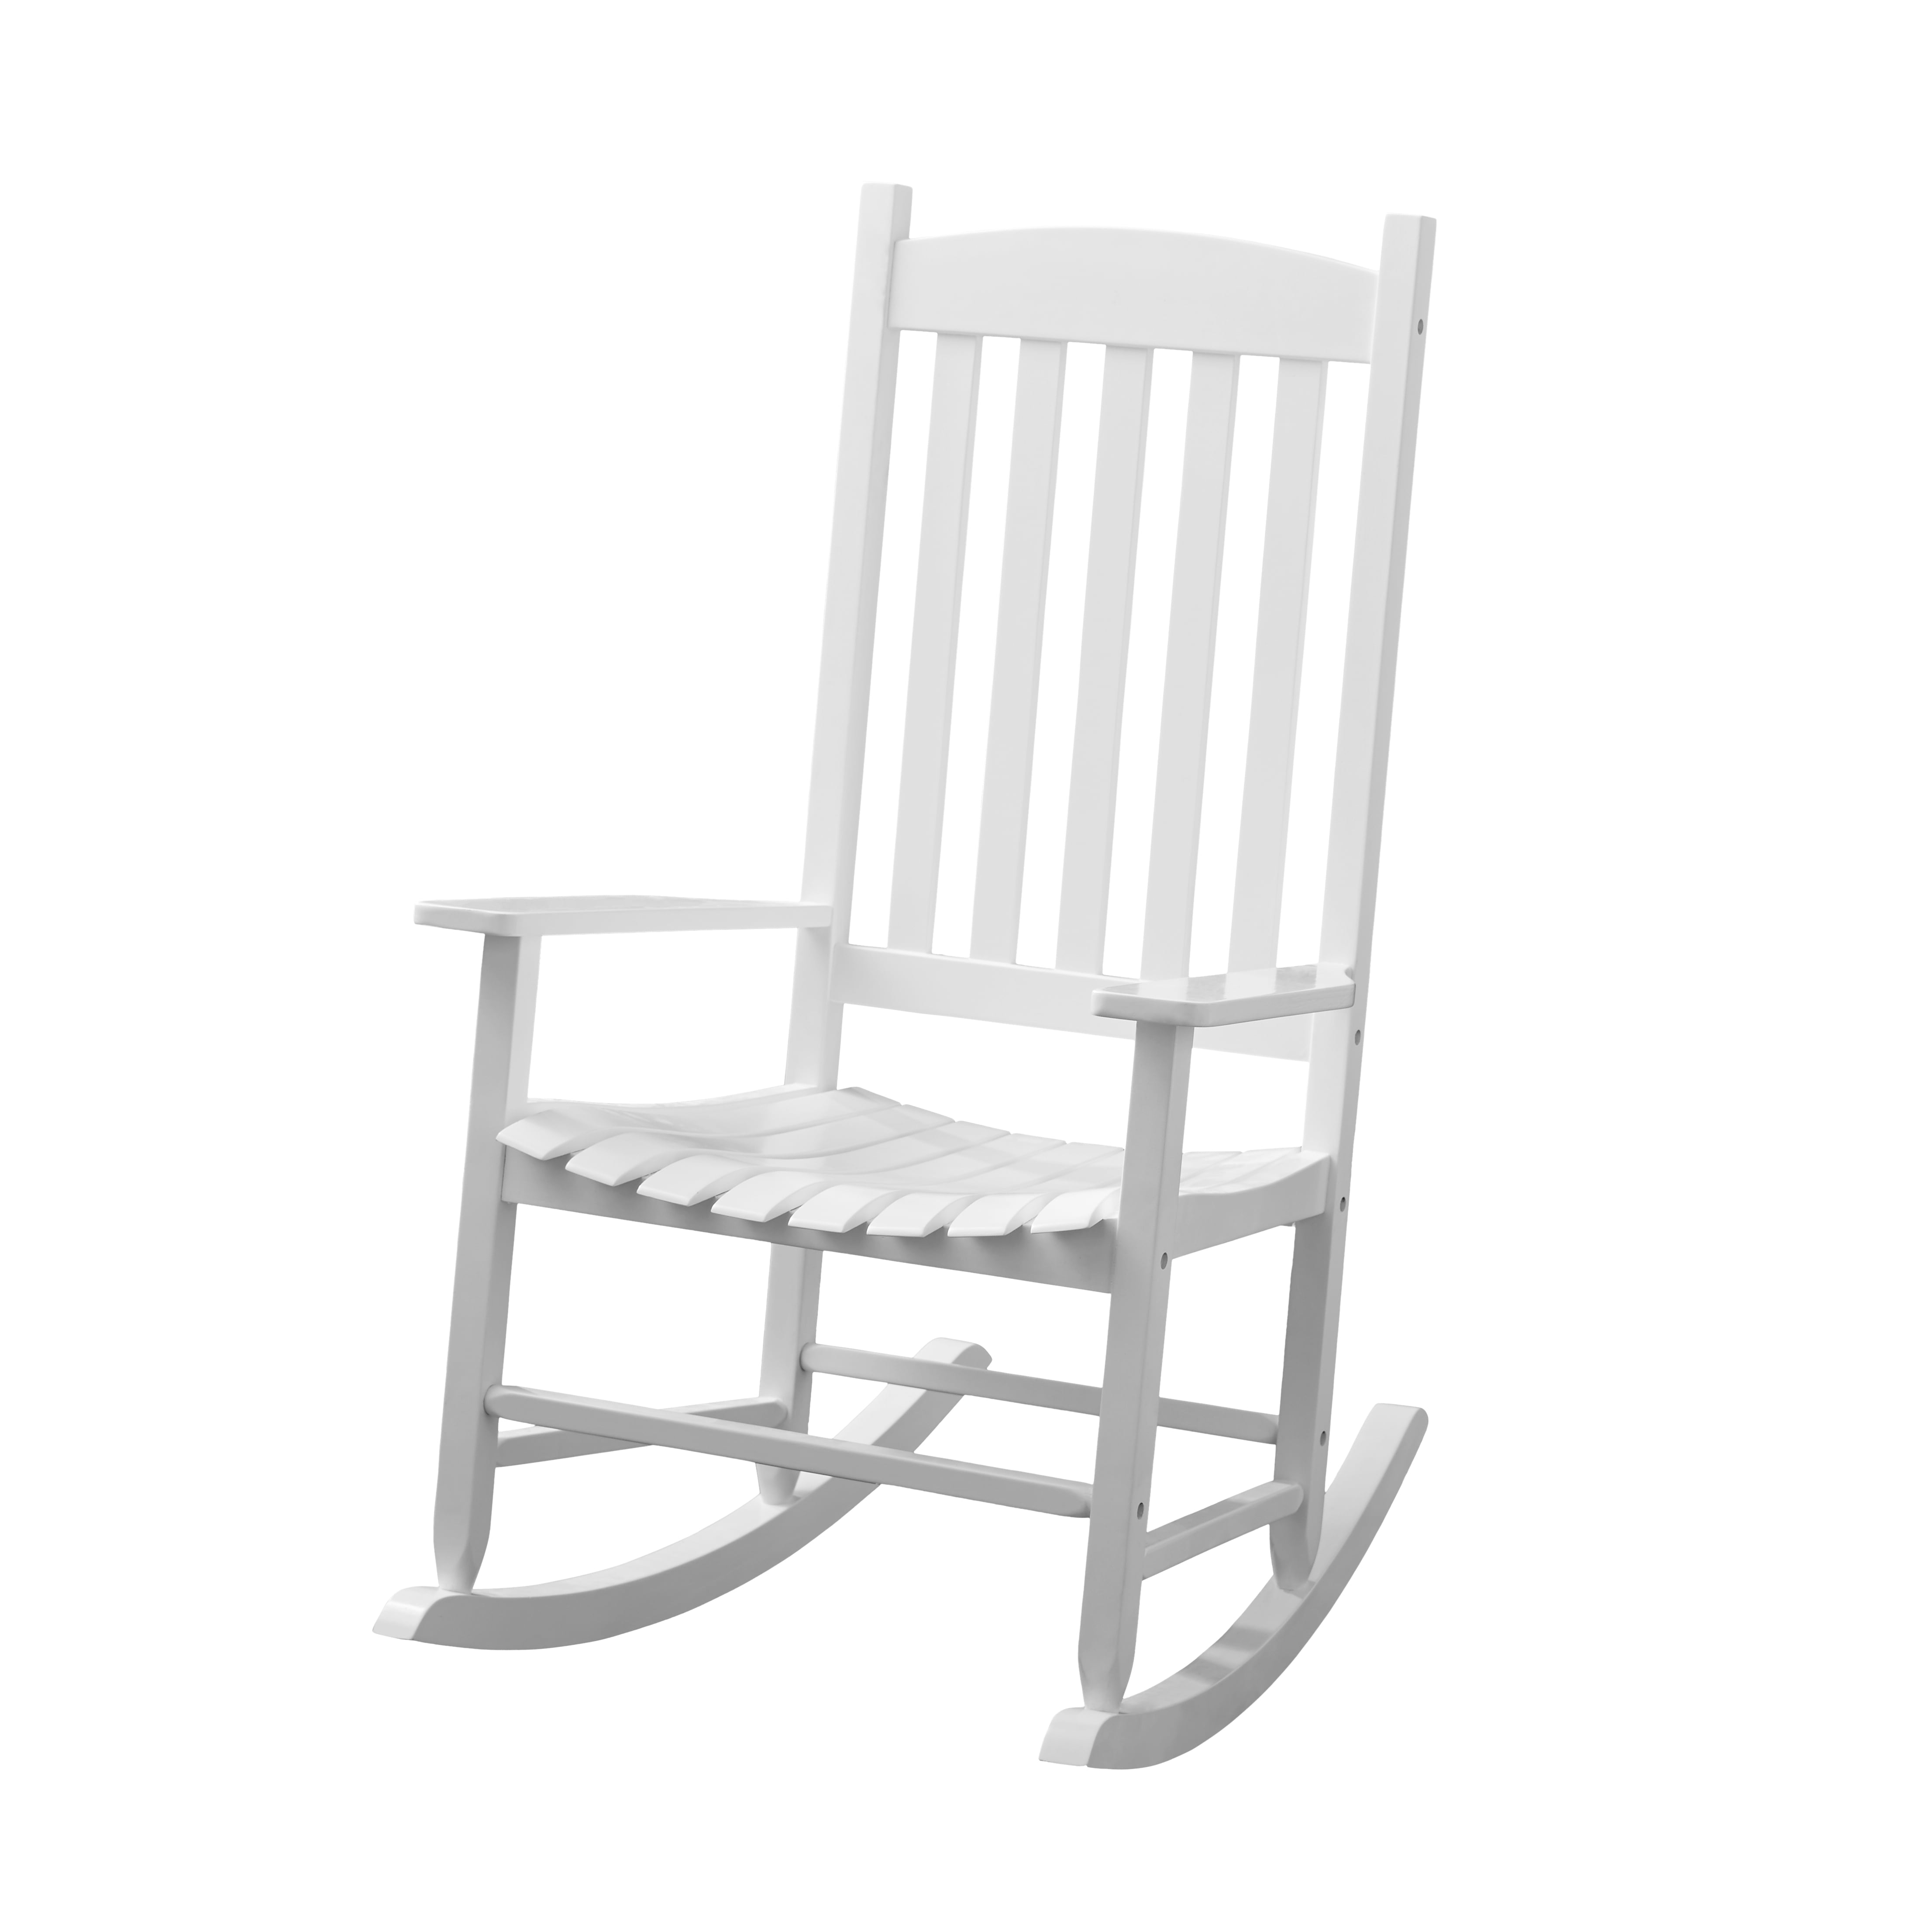 Mainstays White Solid Wood Slat Outdoor Rocking Chair   Walmart.com